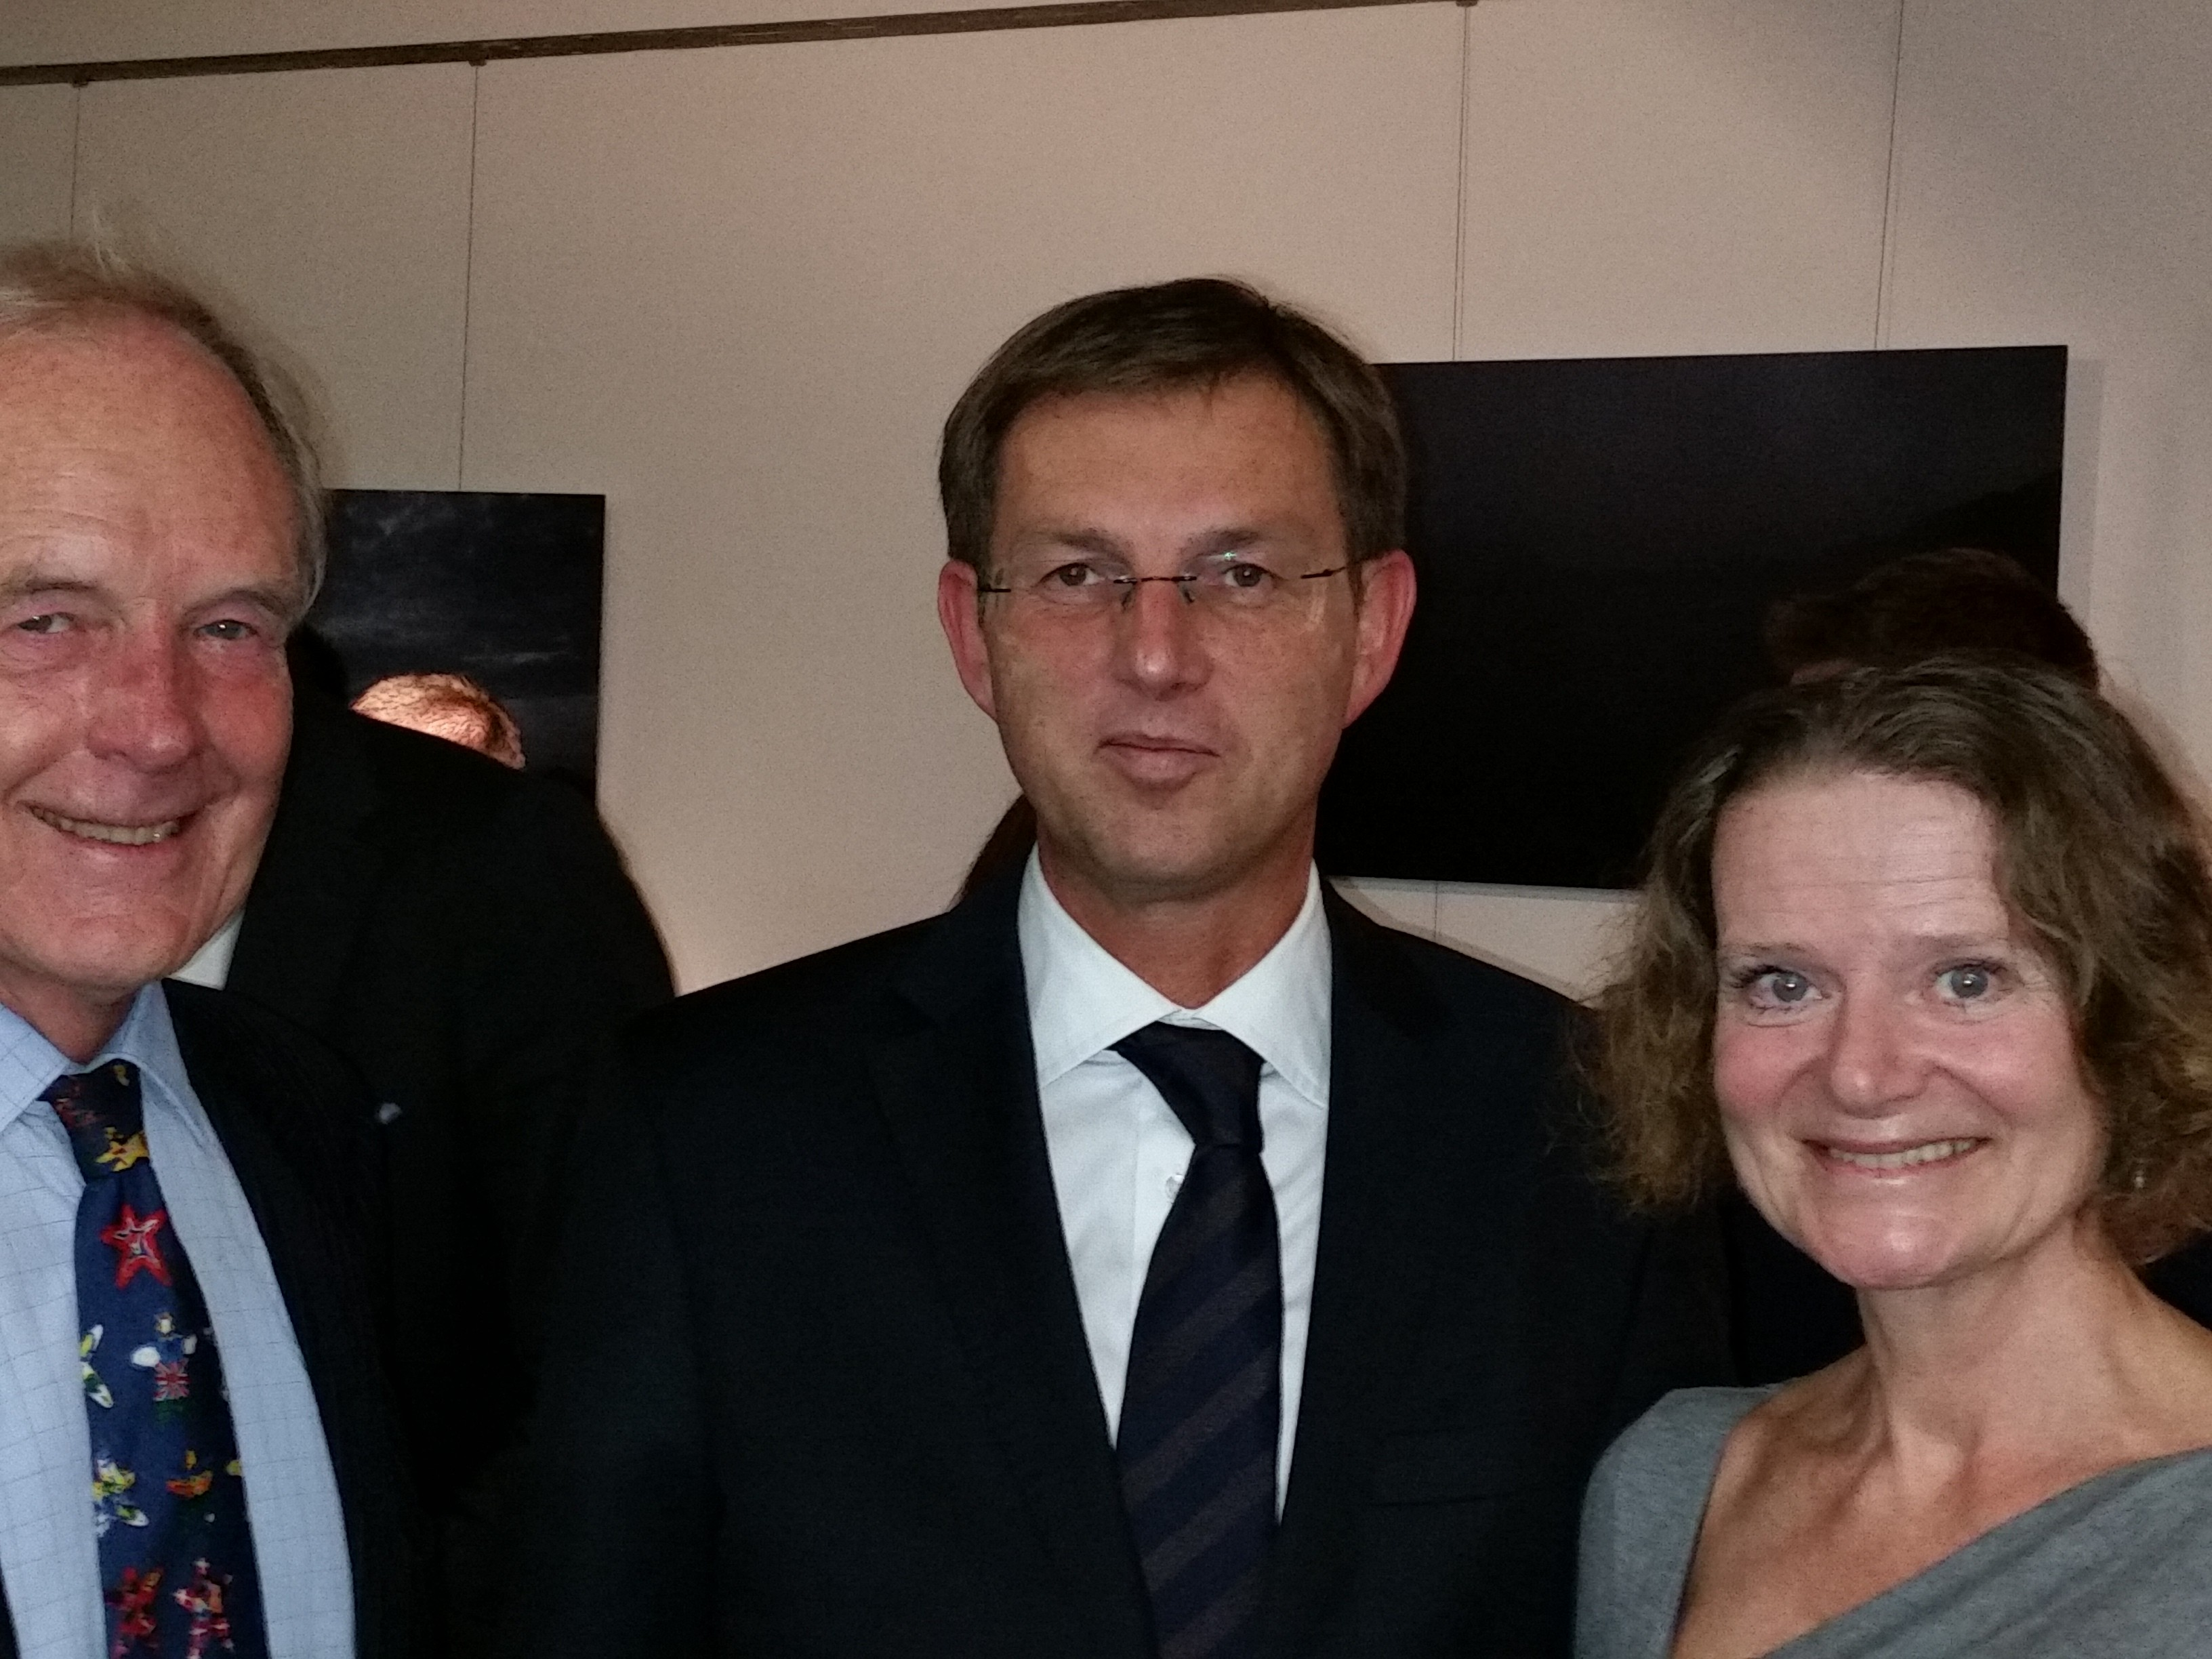 Dr Cerar with  David Lloyd, Chairman of the British-Slovene Society and Evelina Ferrar, Trustee